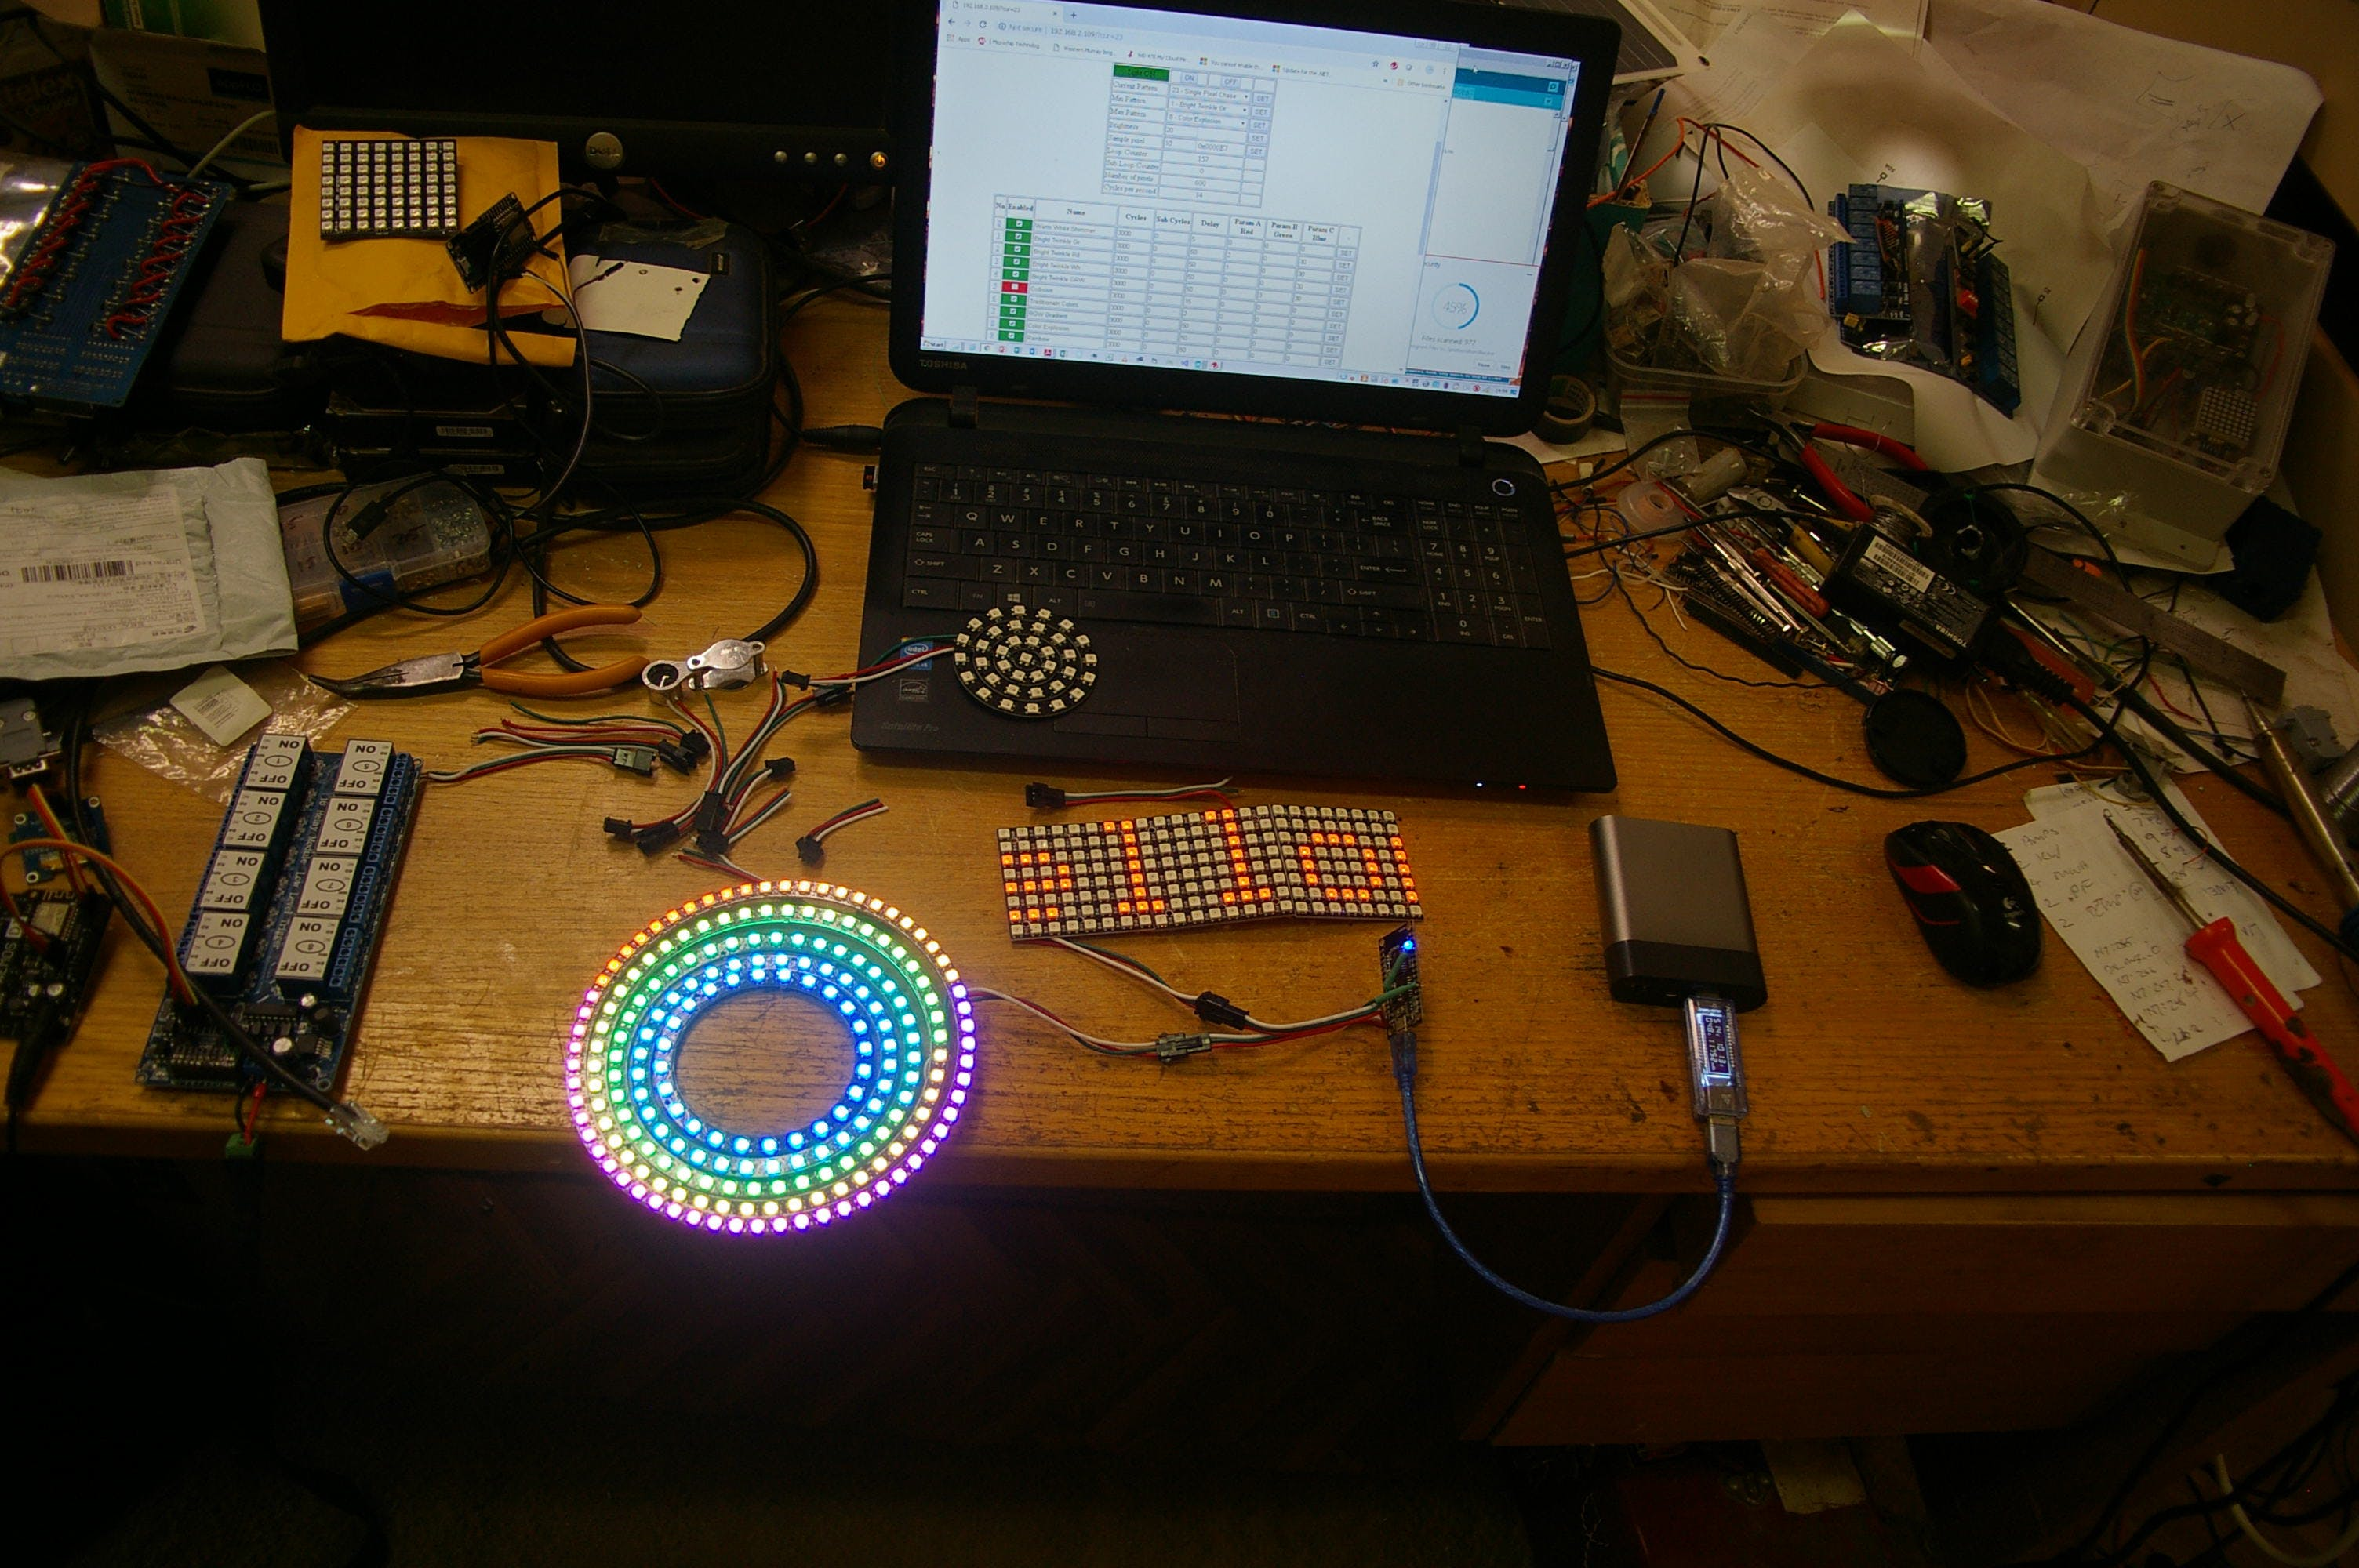 Two strings sort of going via USB of  board. A test interface on the laptop.